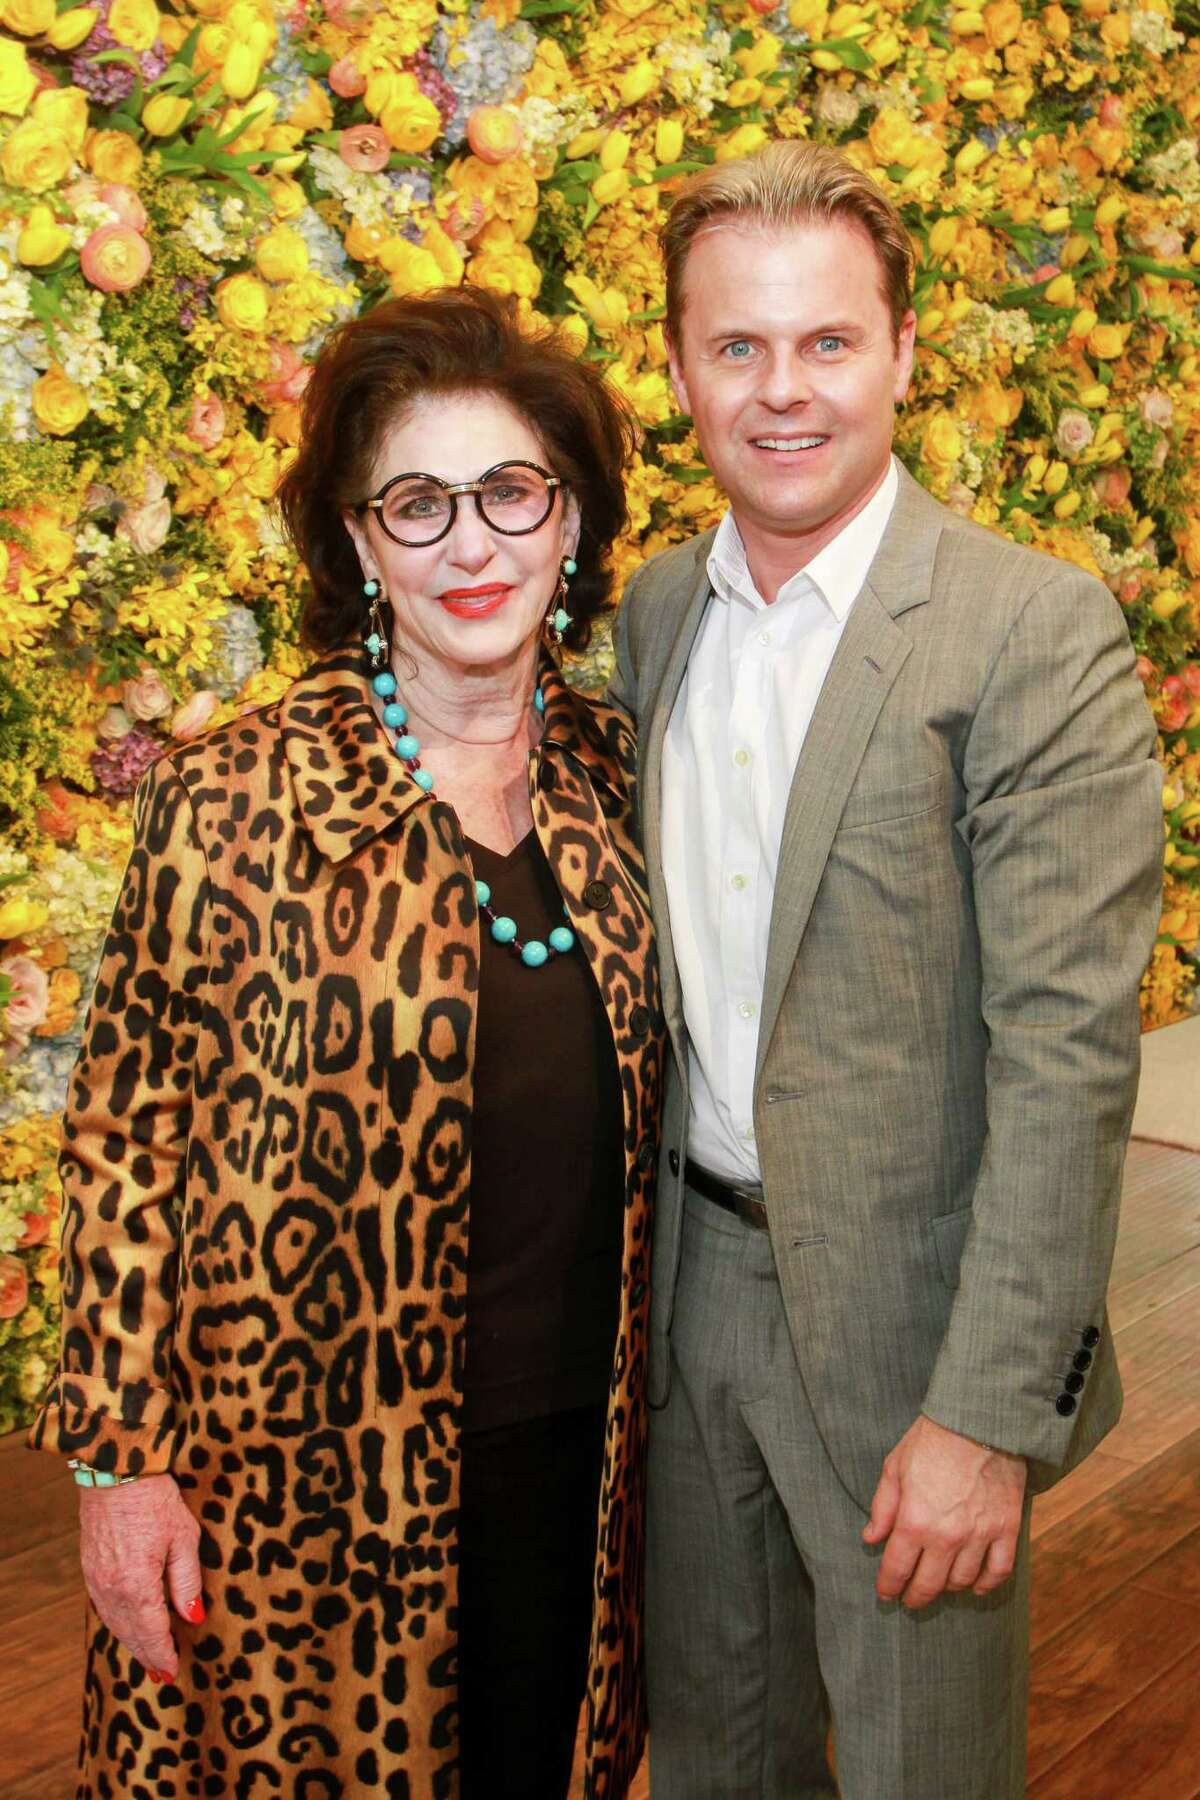 Chair Elyse Lanier and designer Adam Lippes at MFAH's Bayou Bend fashion show and luncheon.